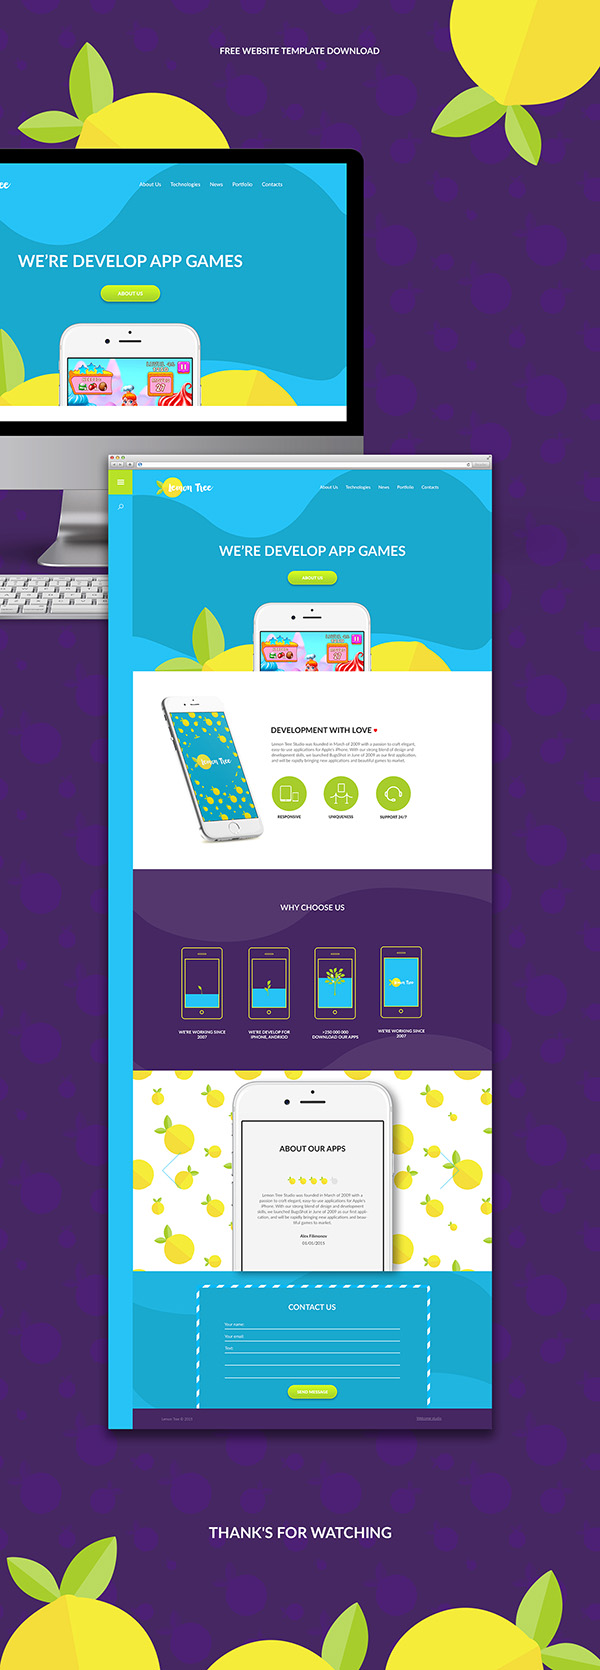 07 website template download